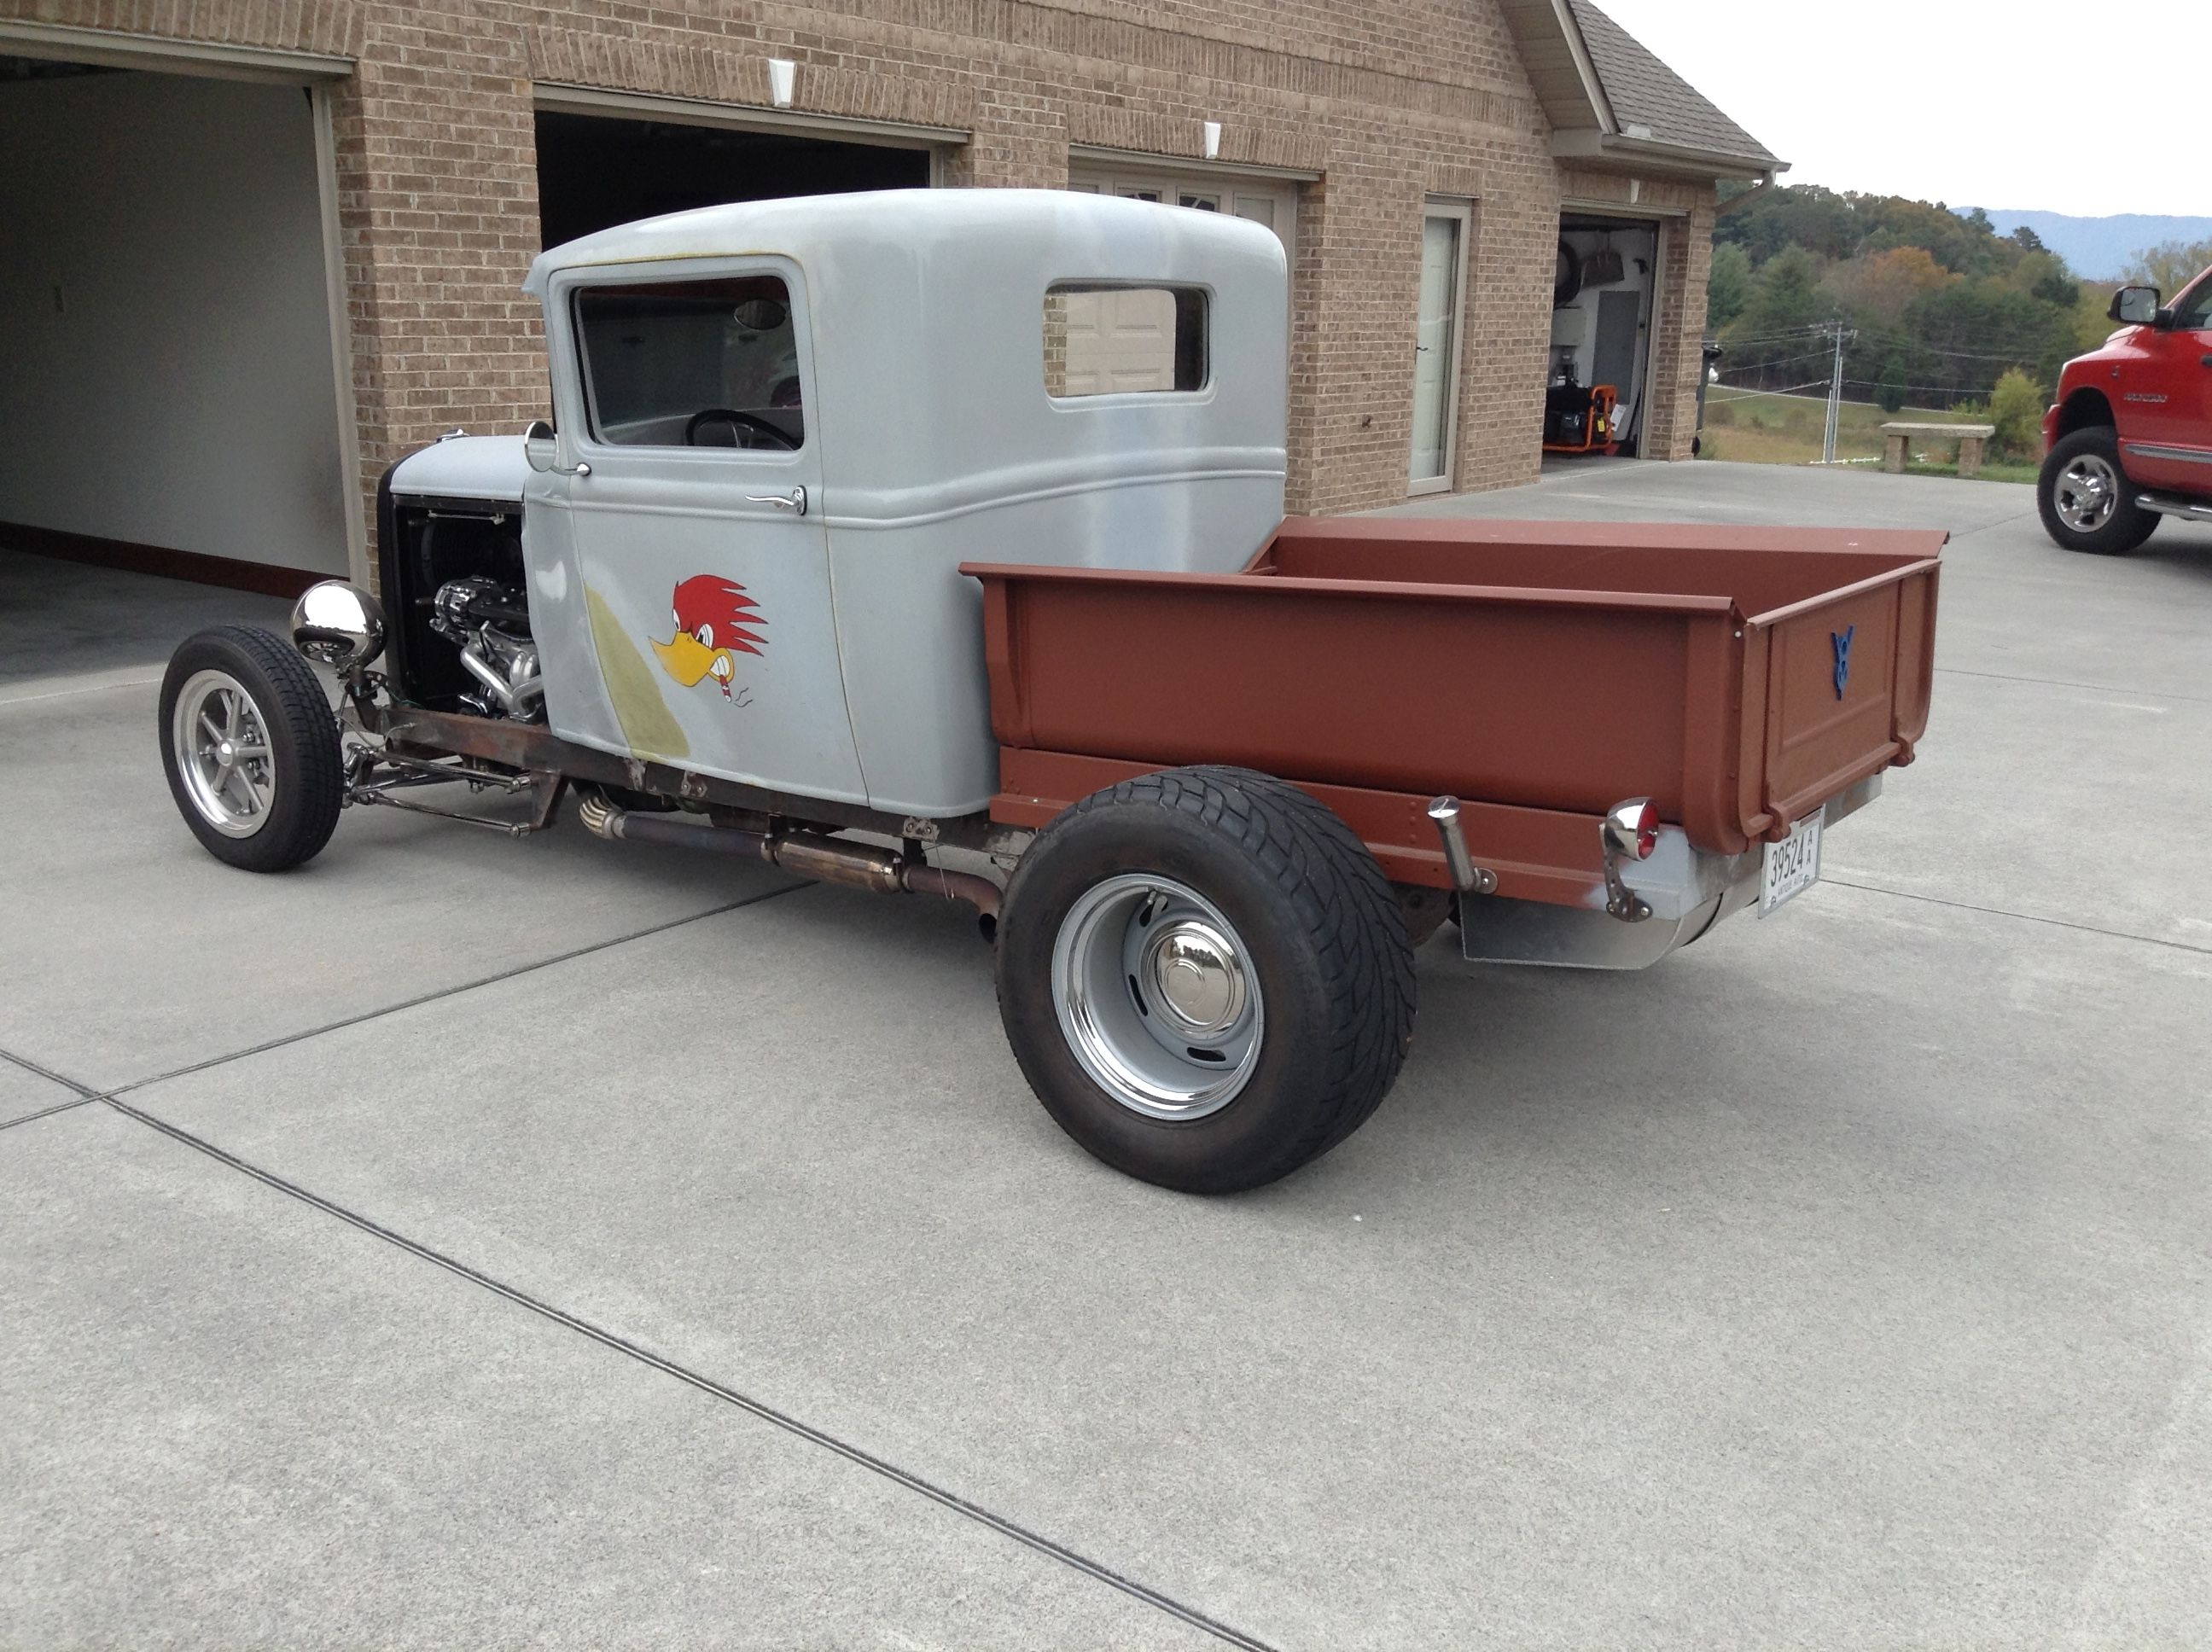 1930 Model A Truck for sale at StreetRodding Willie Moore Sell My ...